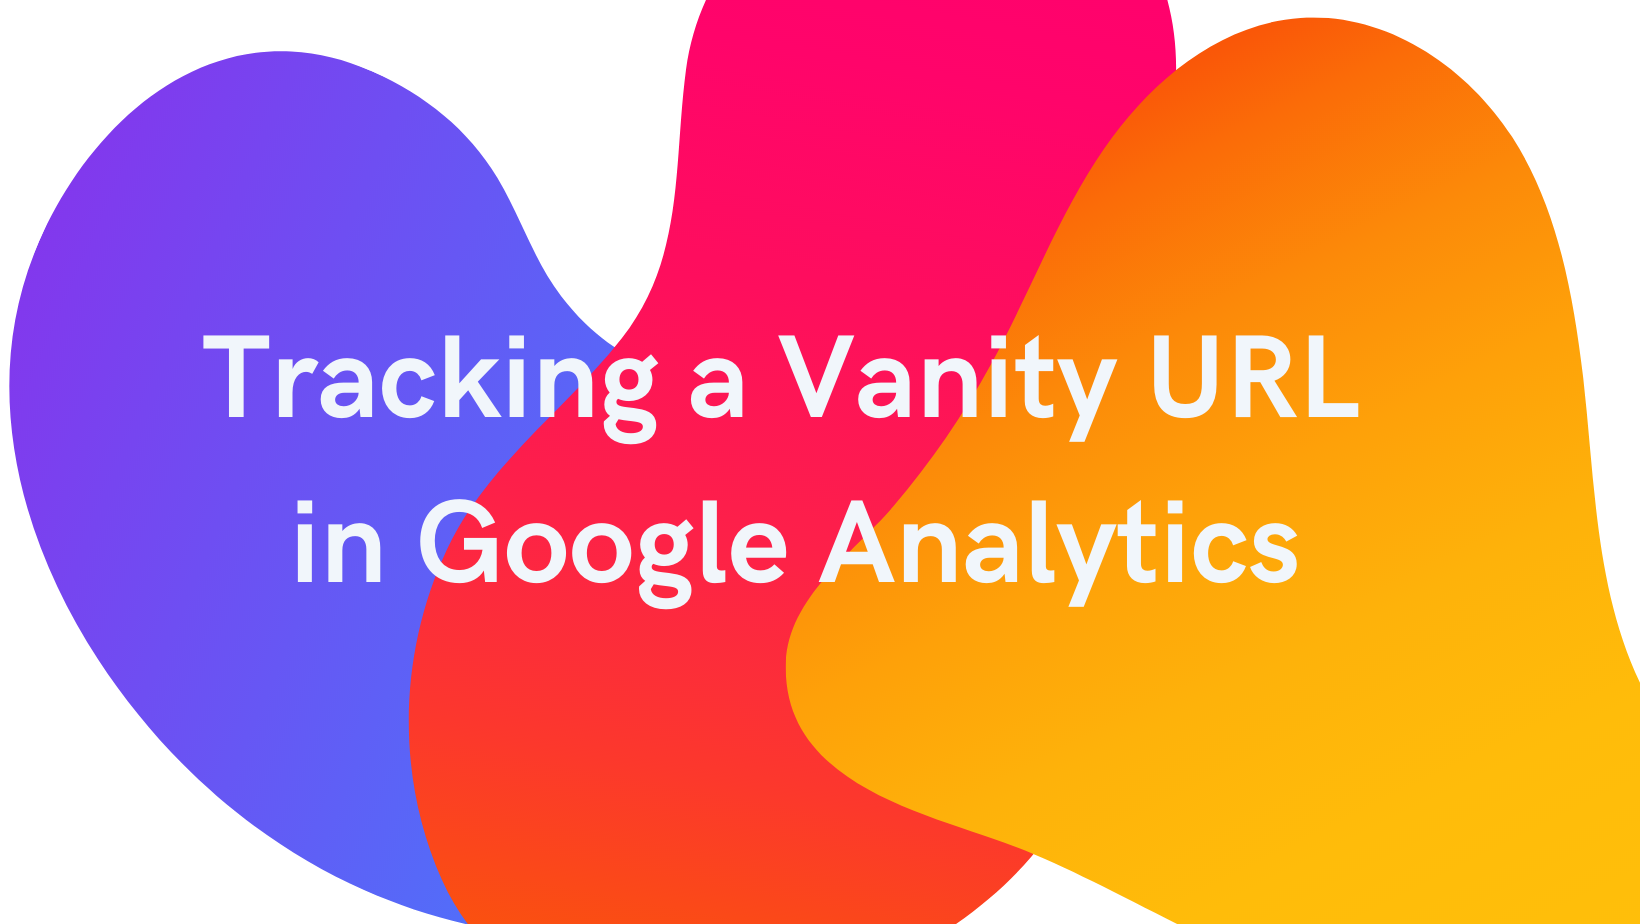 How to Track a Vanity URL in Google Analytics